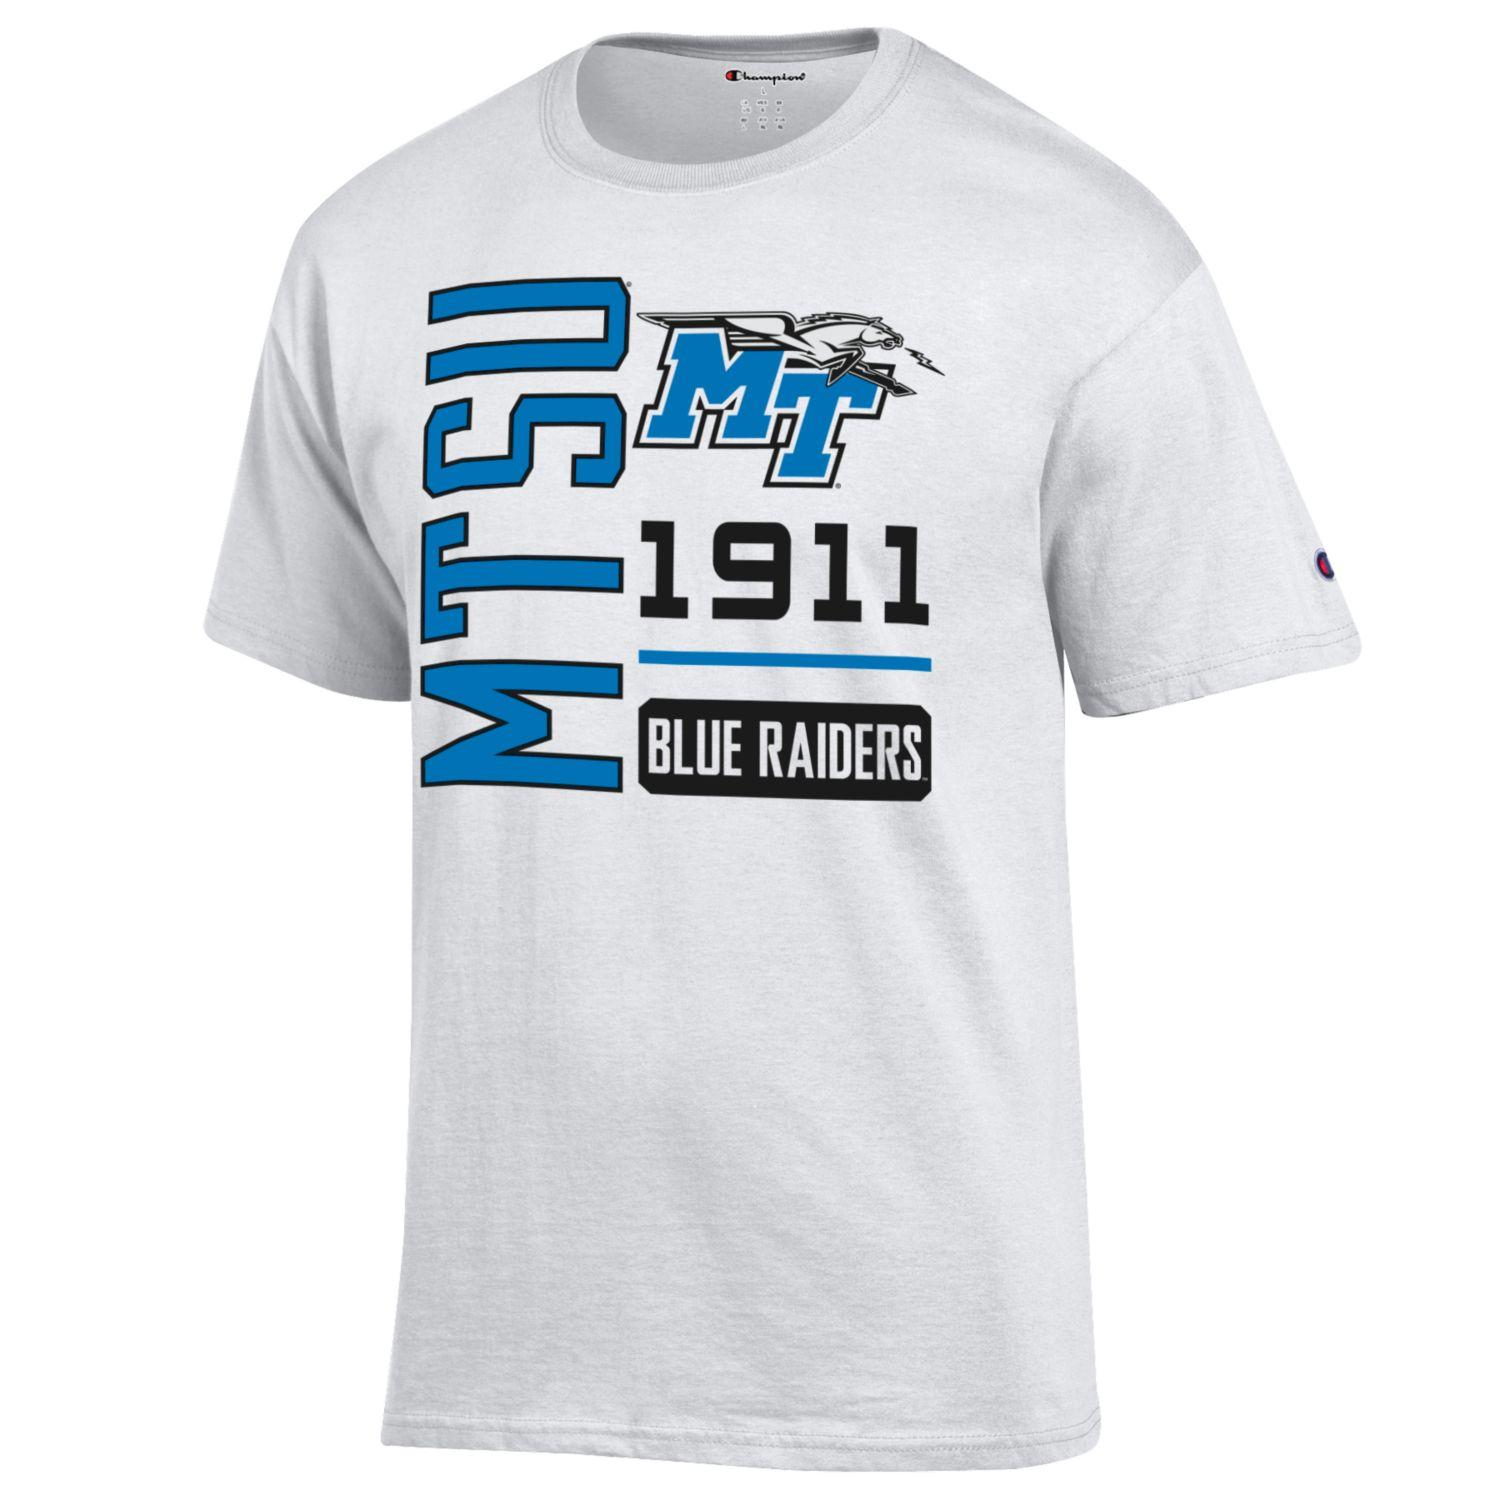 MTSU MT Logo w/ Lightning 1911 Blue Raiders Tshirt